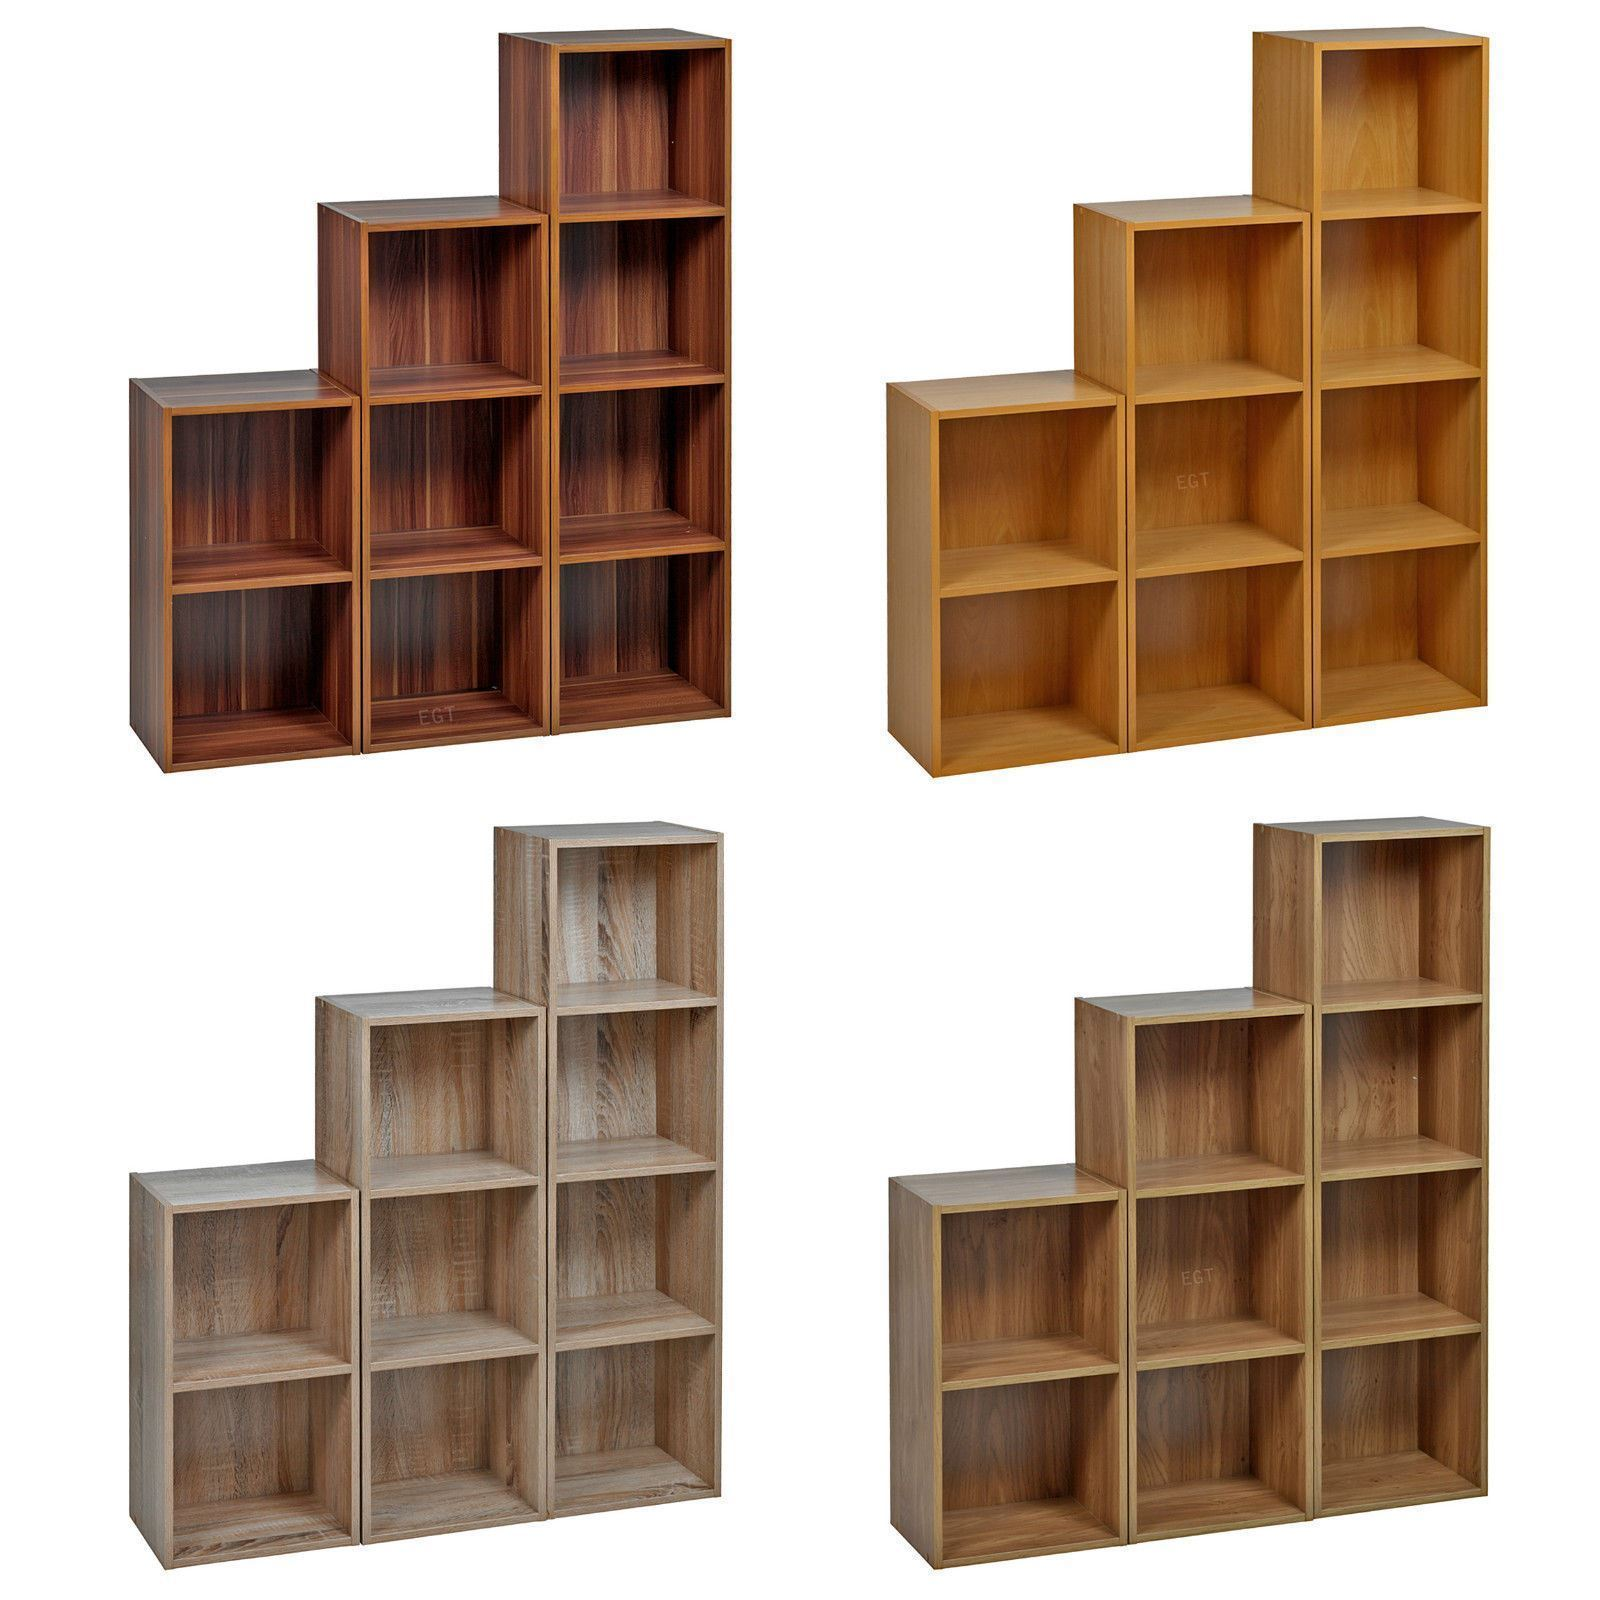 Details About 2 3 4 Tier Wooden Bookcase Display Storage Shelving Shelves Wood Shelf Unit New